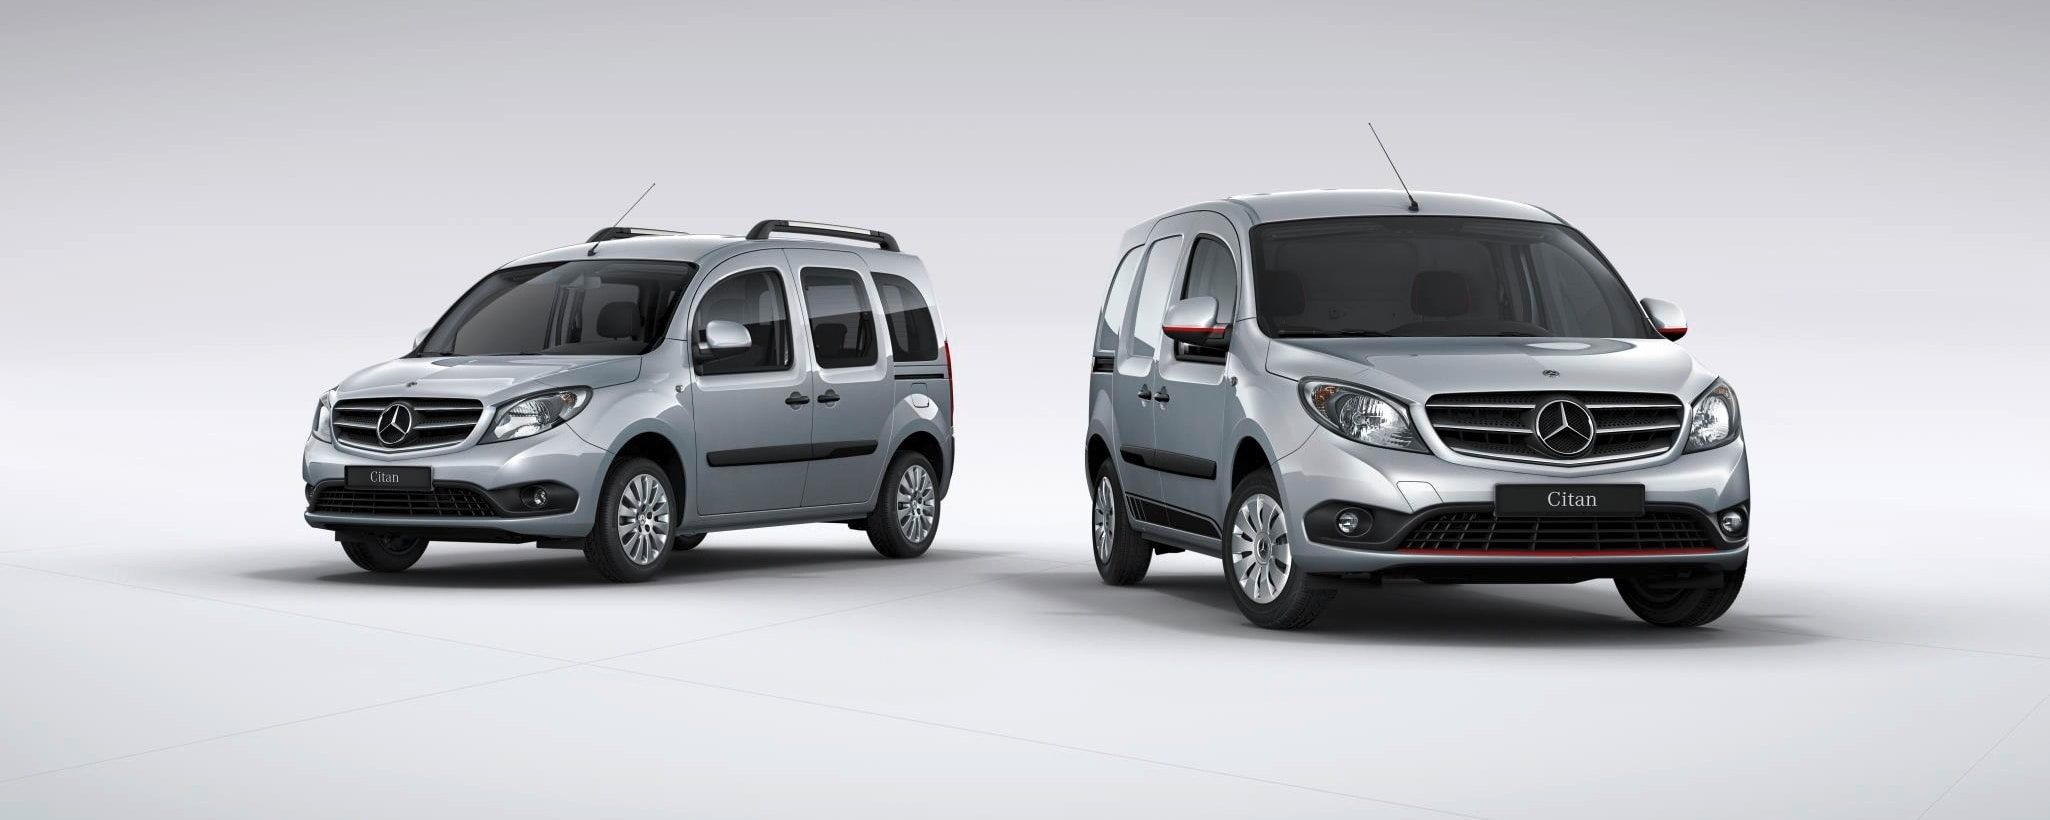 Citan Panel Van, Citan Tourer